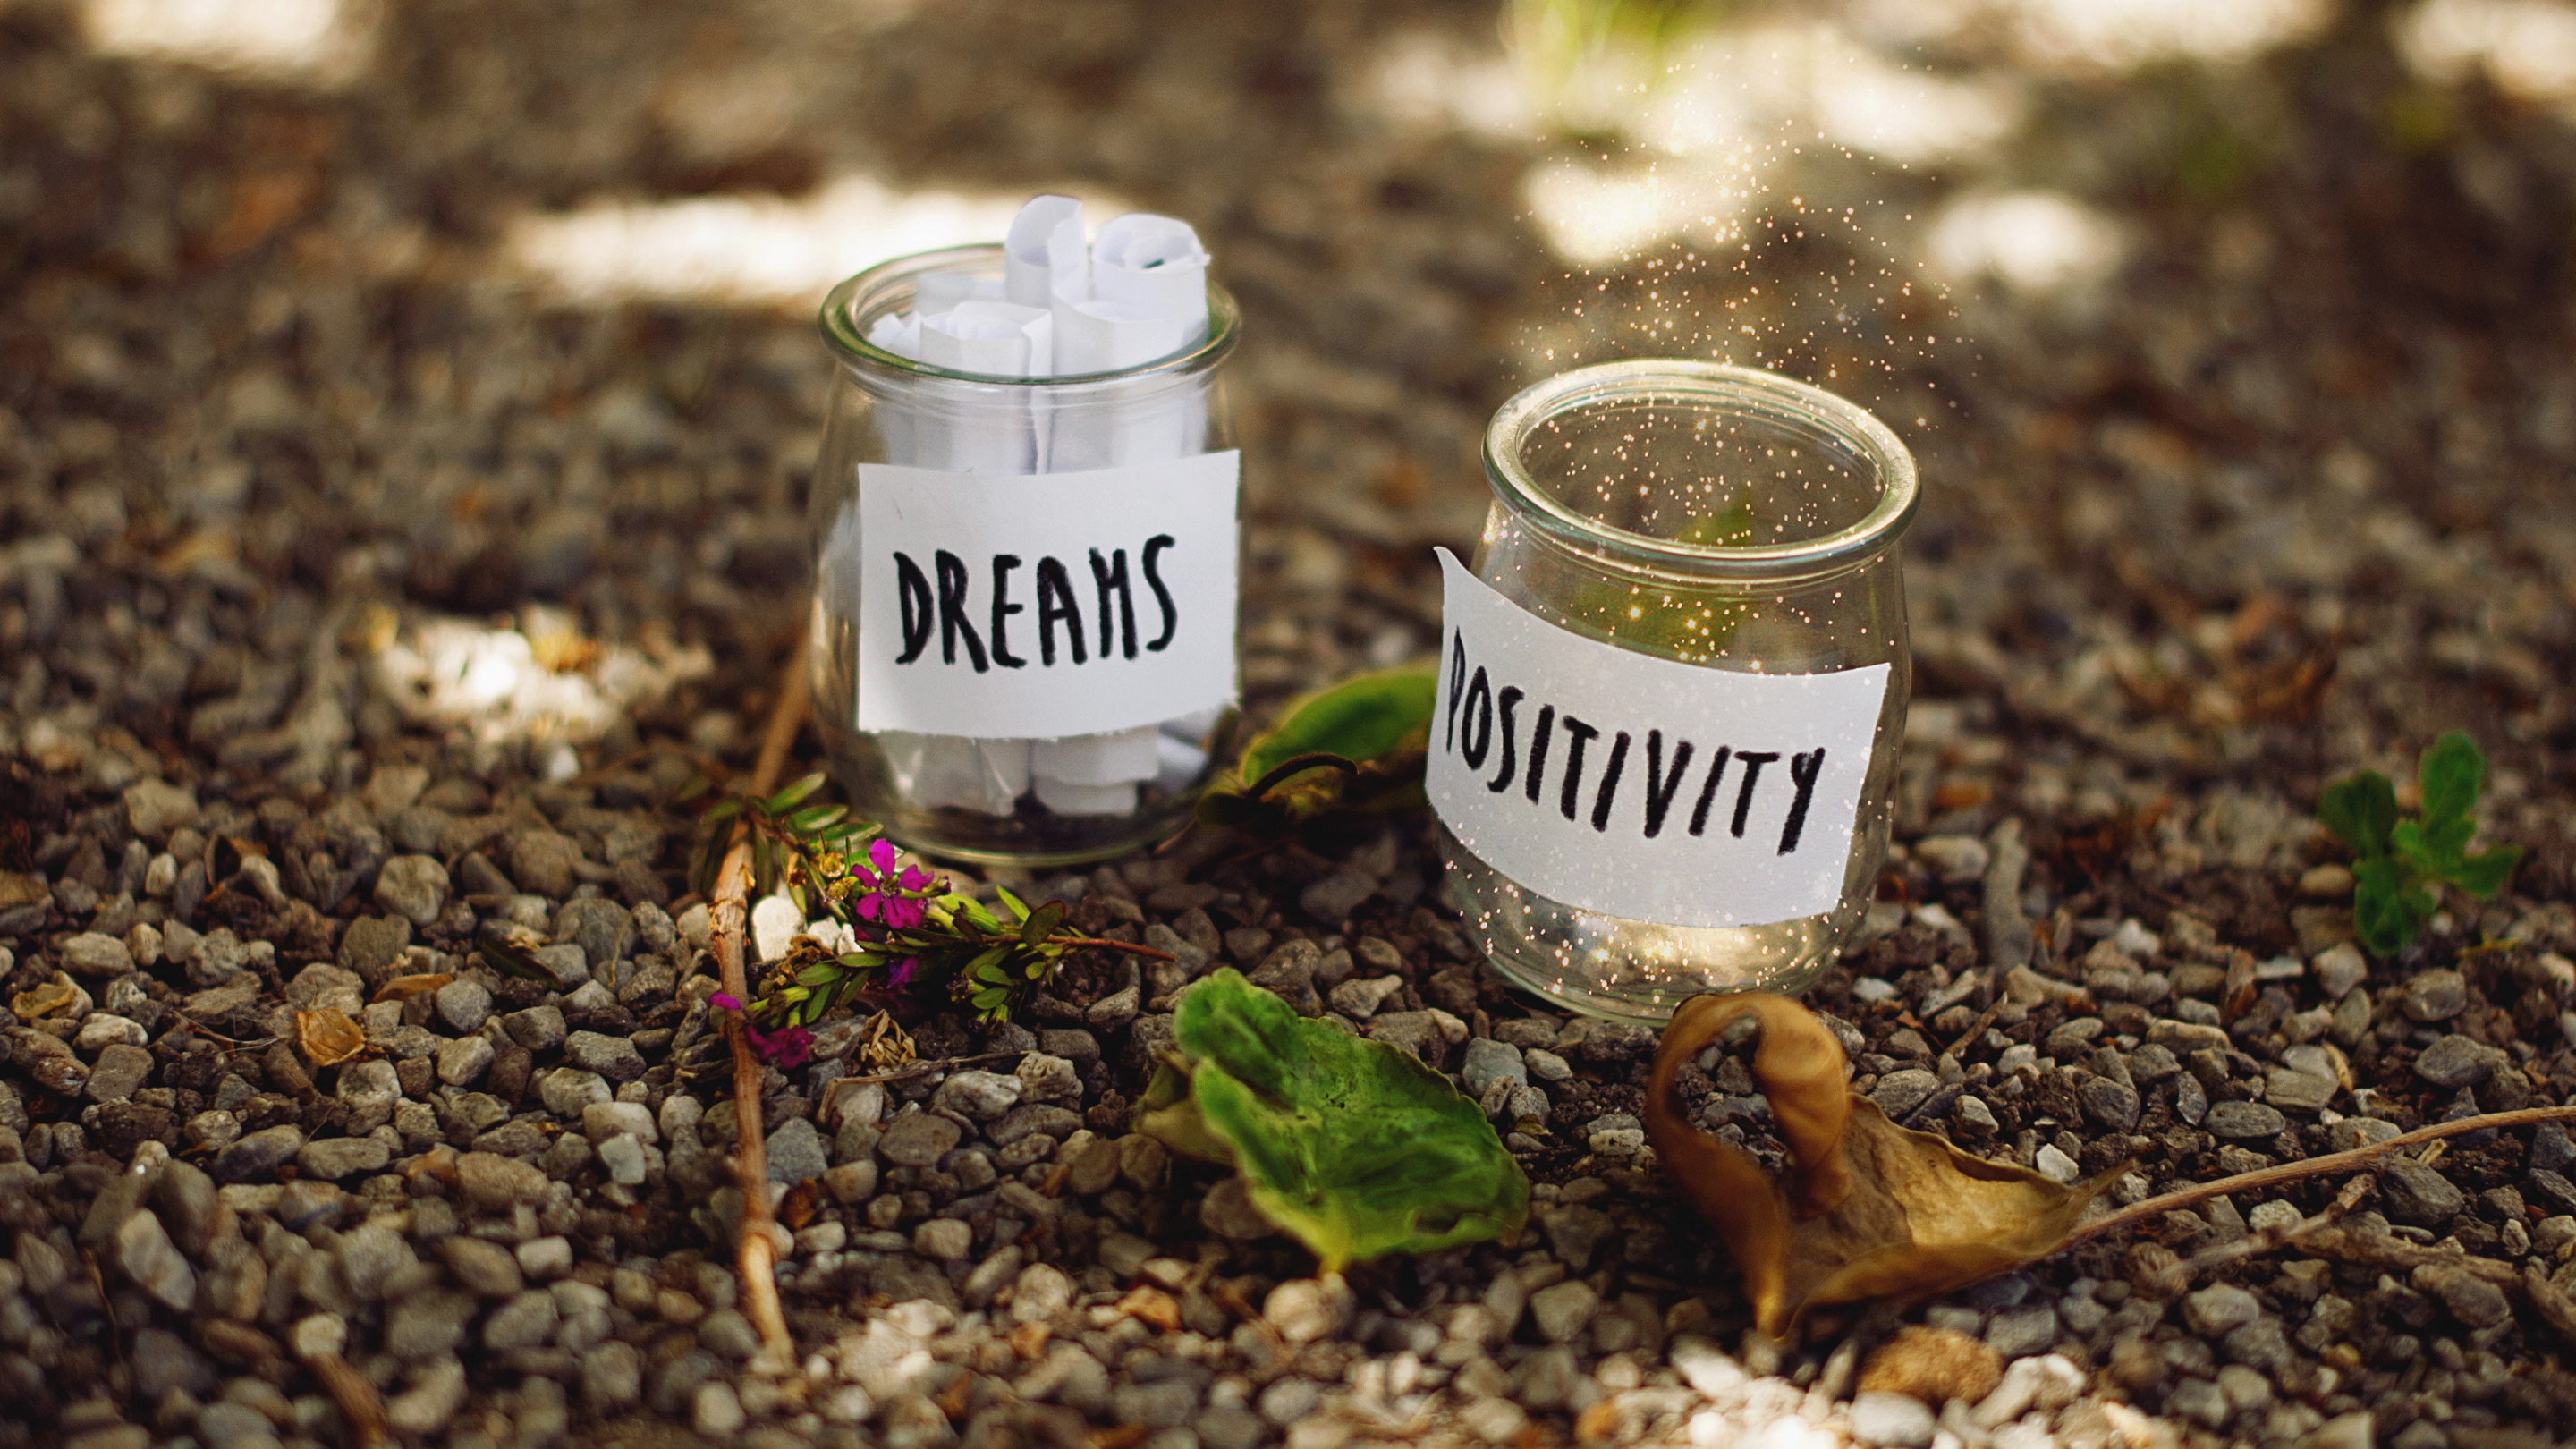 Dreams and Positivity wallpaper 2880x1620